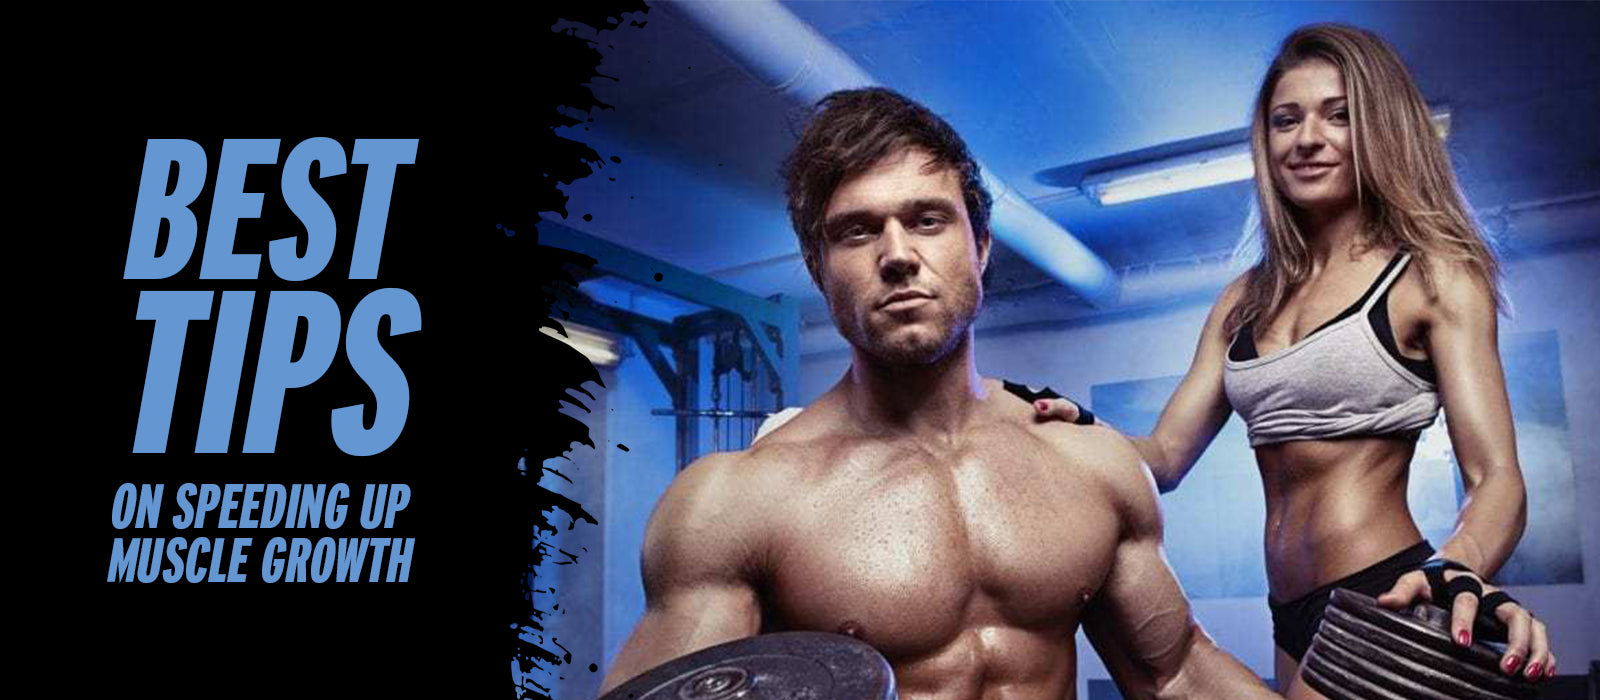 Best Tips On Speeding Up Muscle Growth